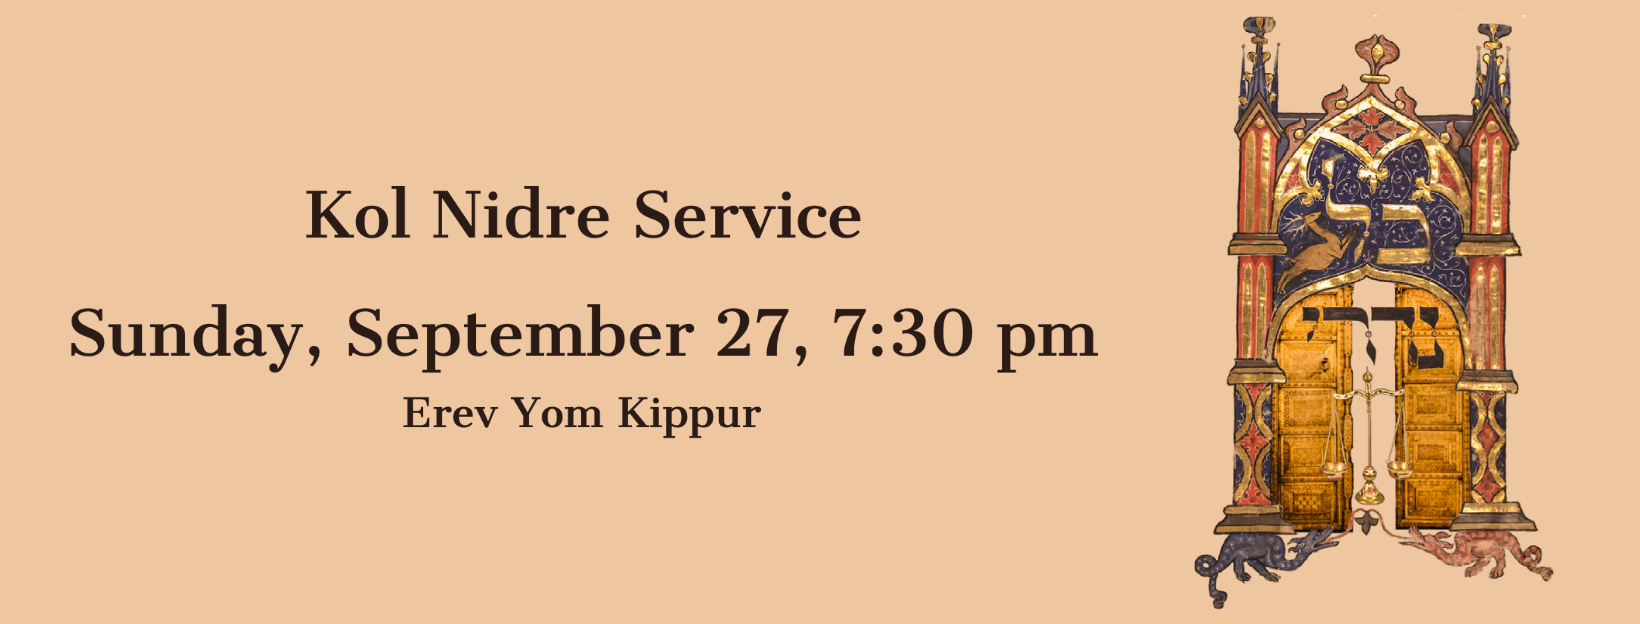 Kol Nidre Service Sunday, 7:30 pm September 27th, 2020